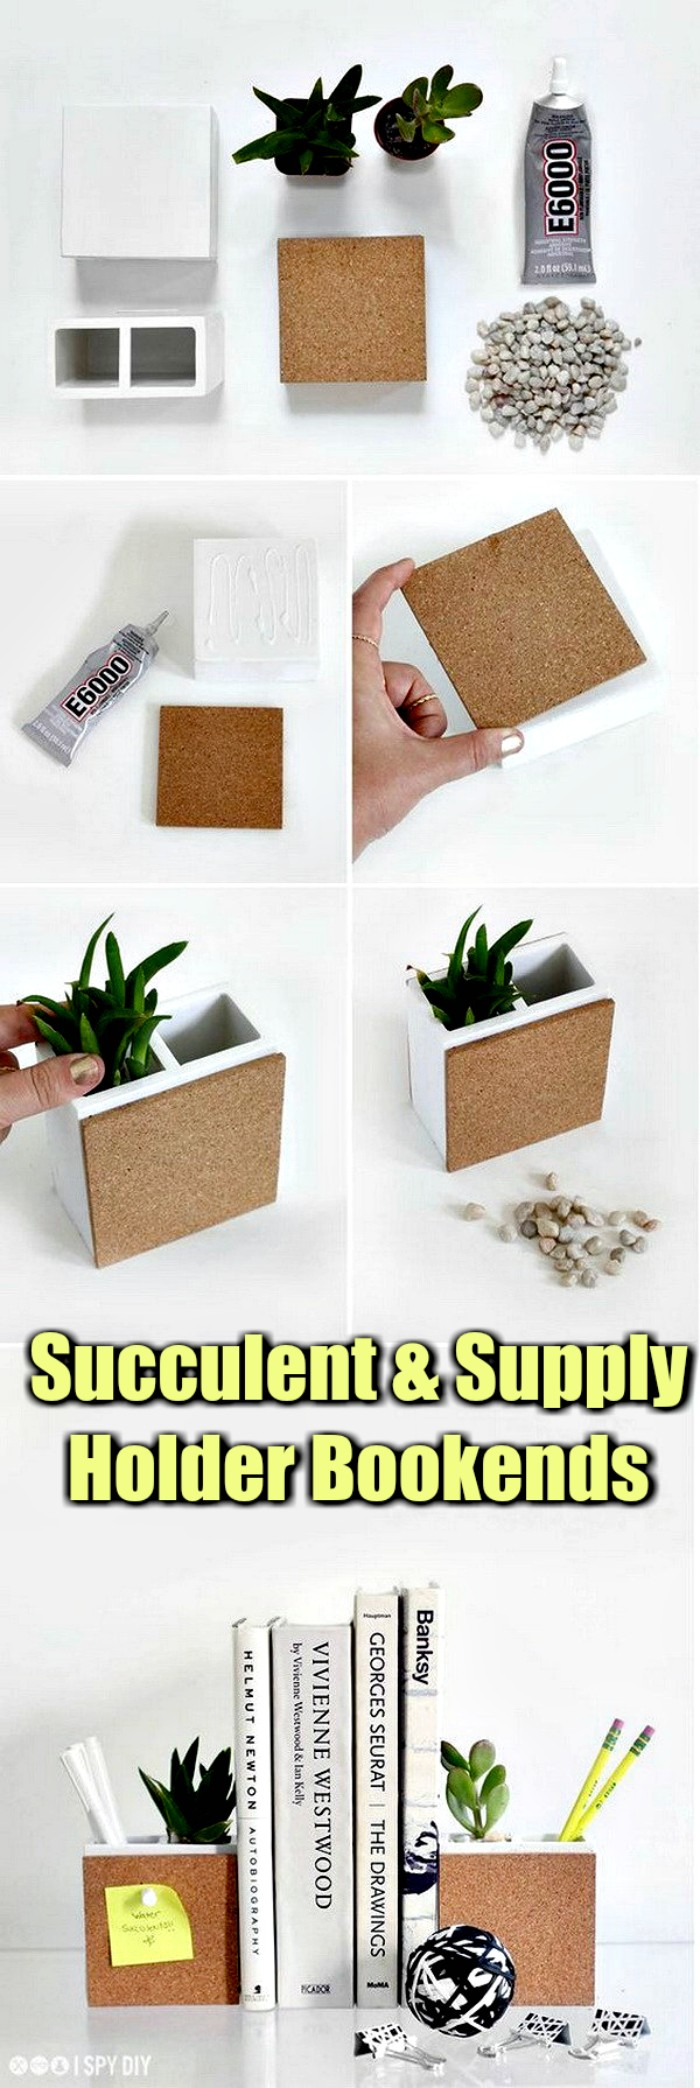 Succulent Supply Holder Bookends Cheap DIY Projects For Your Home Decoration